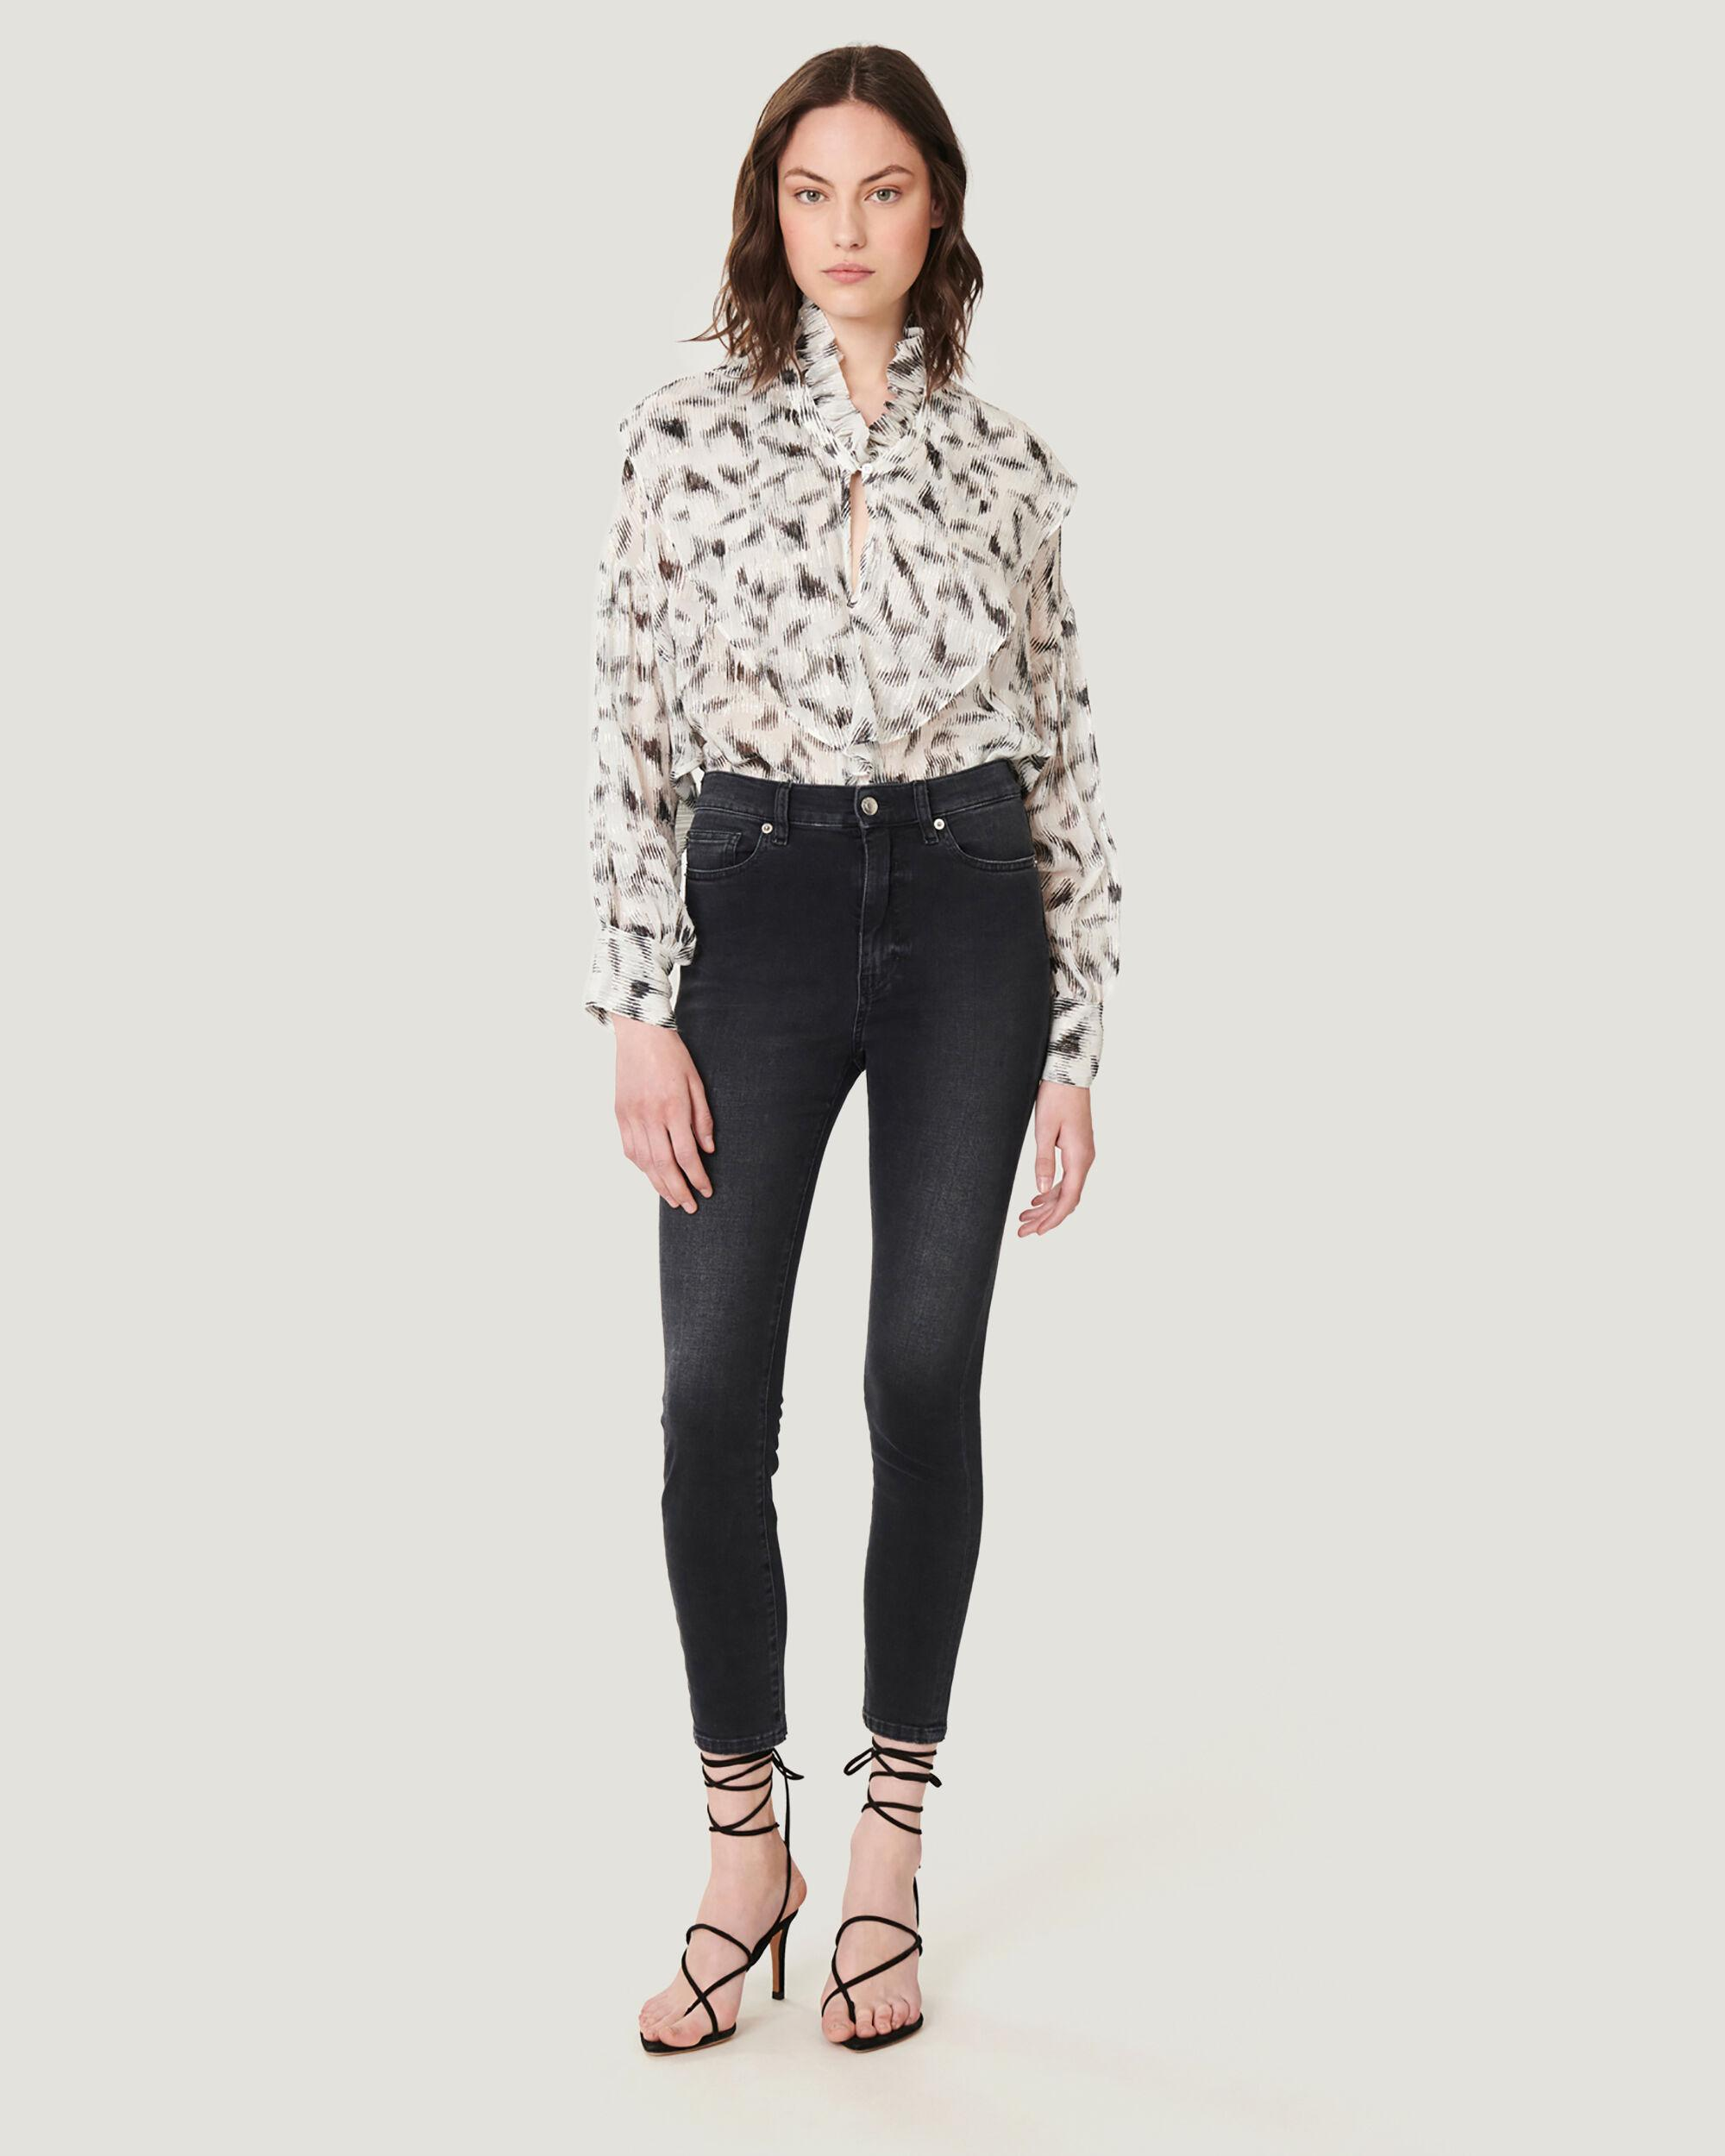 ALLONE SKINNY HIGH WAIST WASHED JEANS